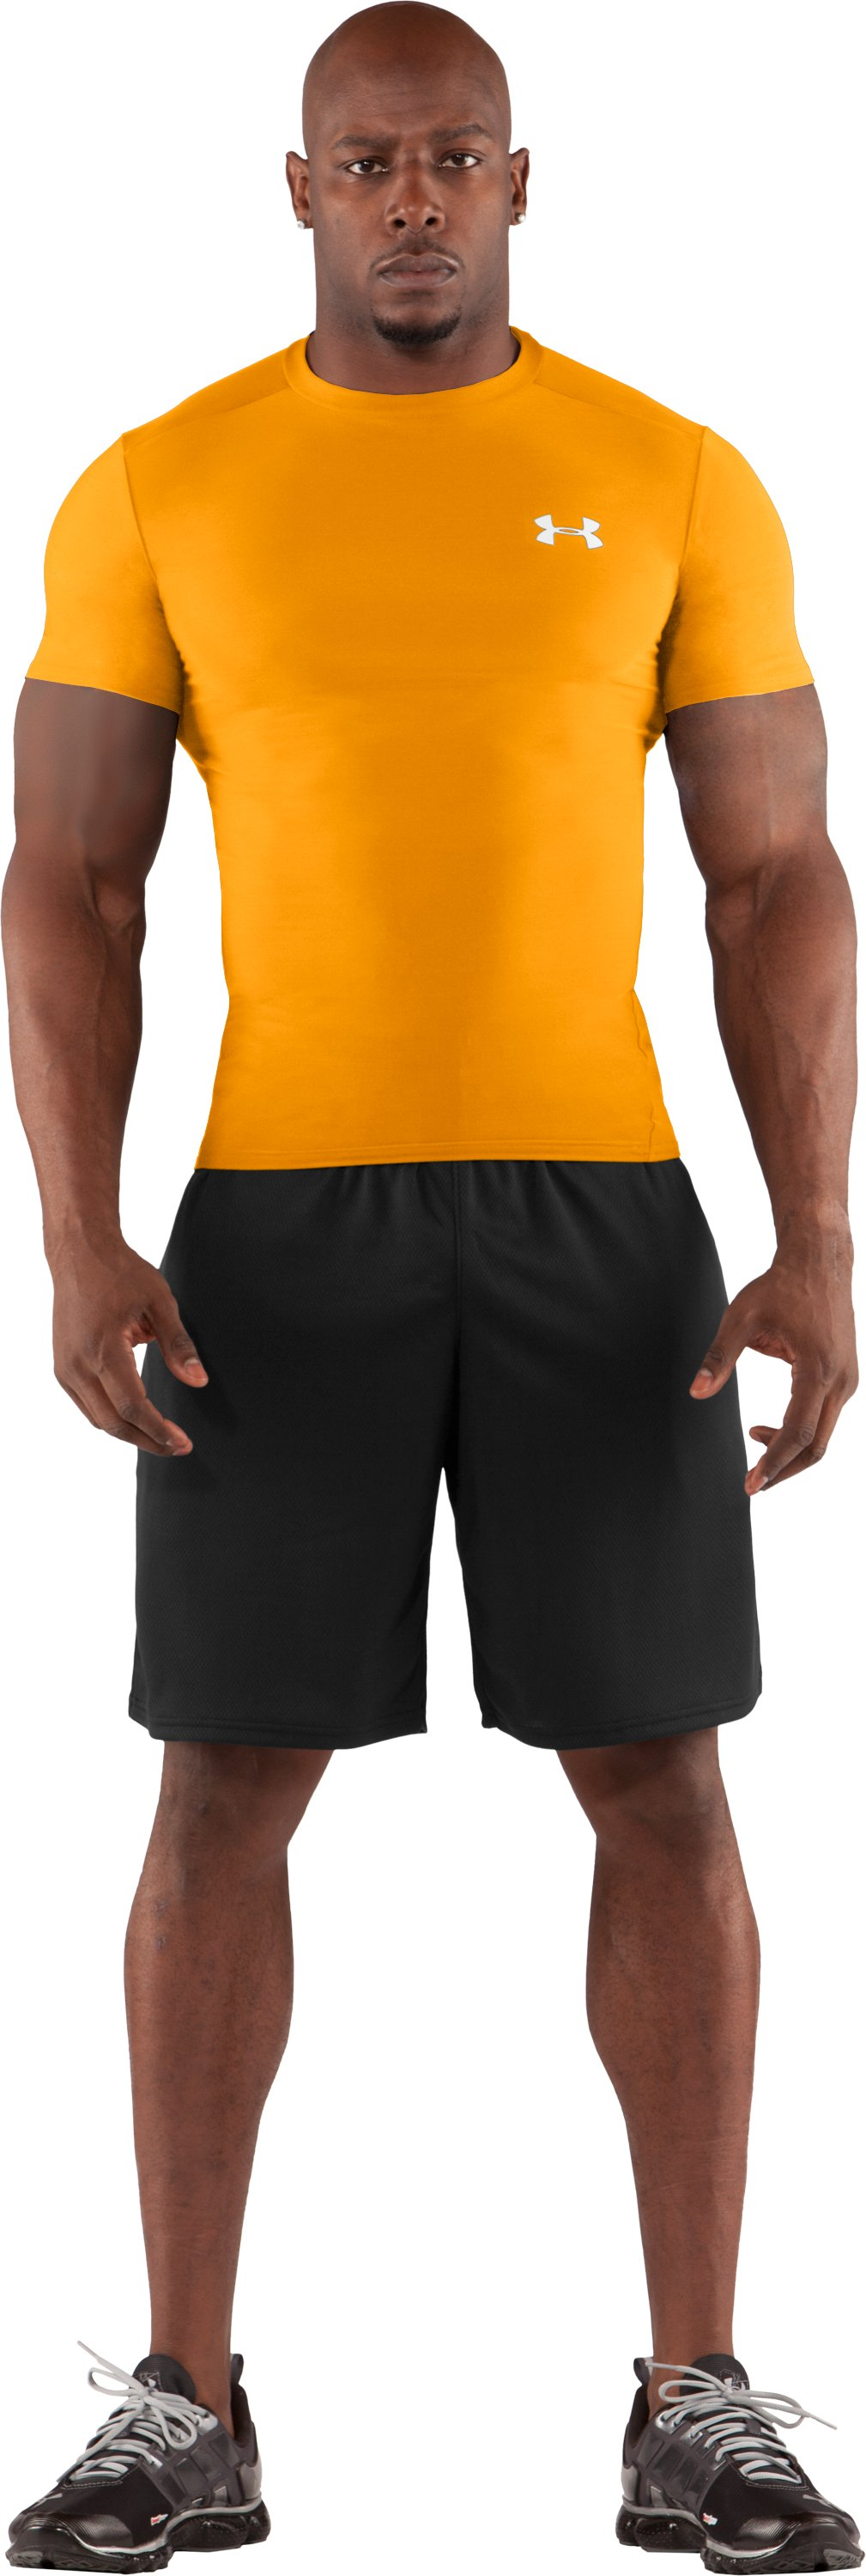 Men's HeatGear® Compression Short Sleeve T-Shirt, Steeltown Gold